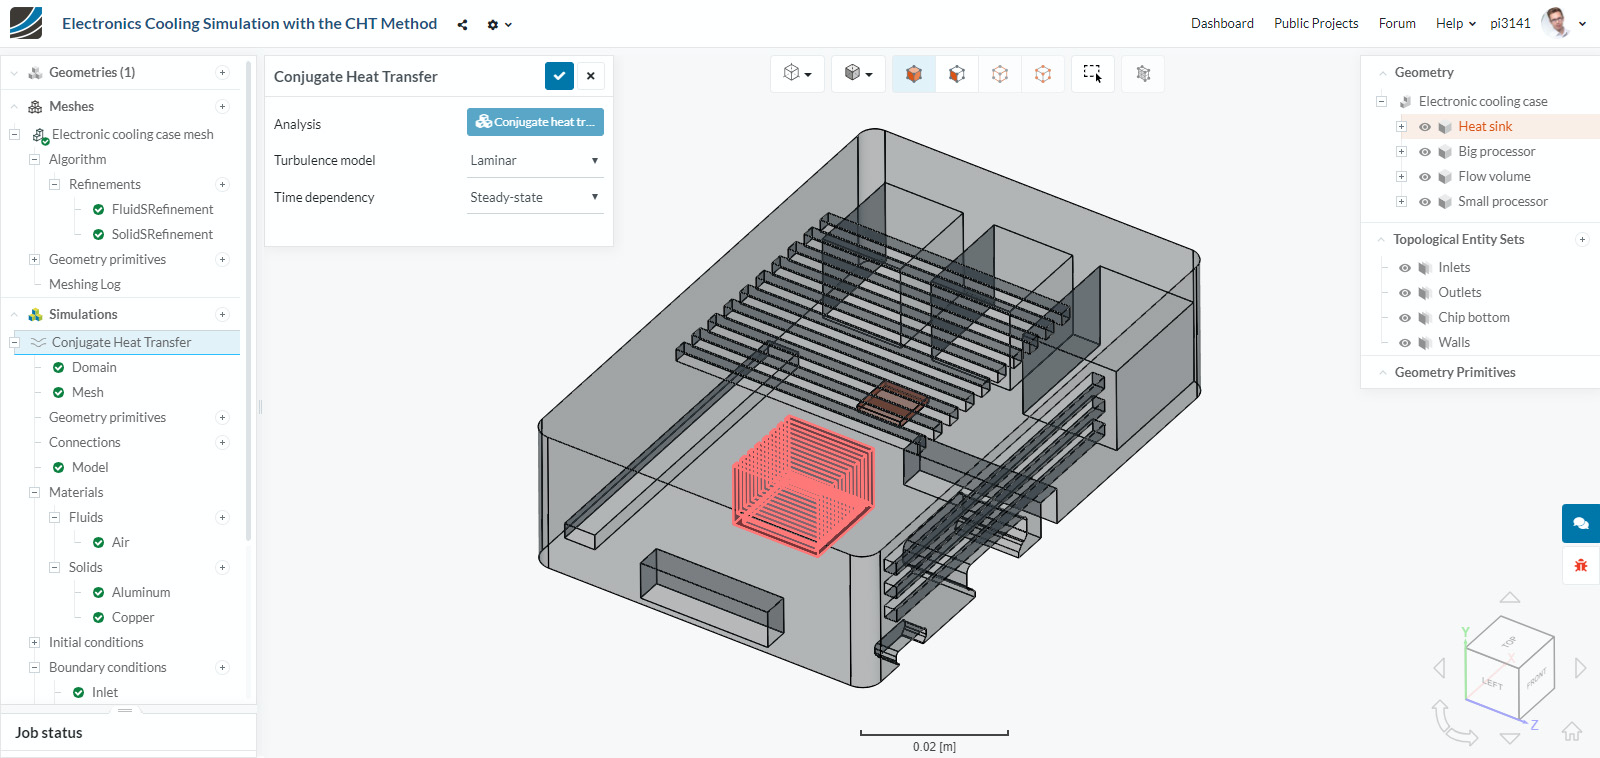 Screenshot of the SimScale platform after the upload of an electronics enclosure CAD model